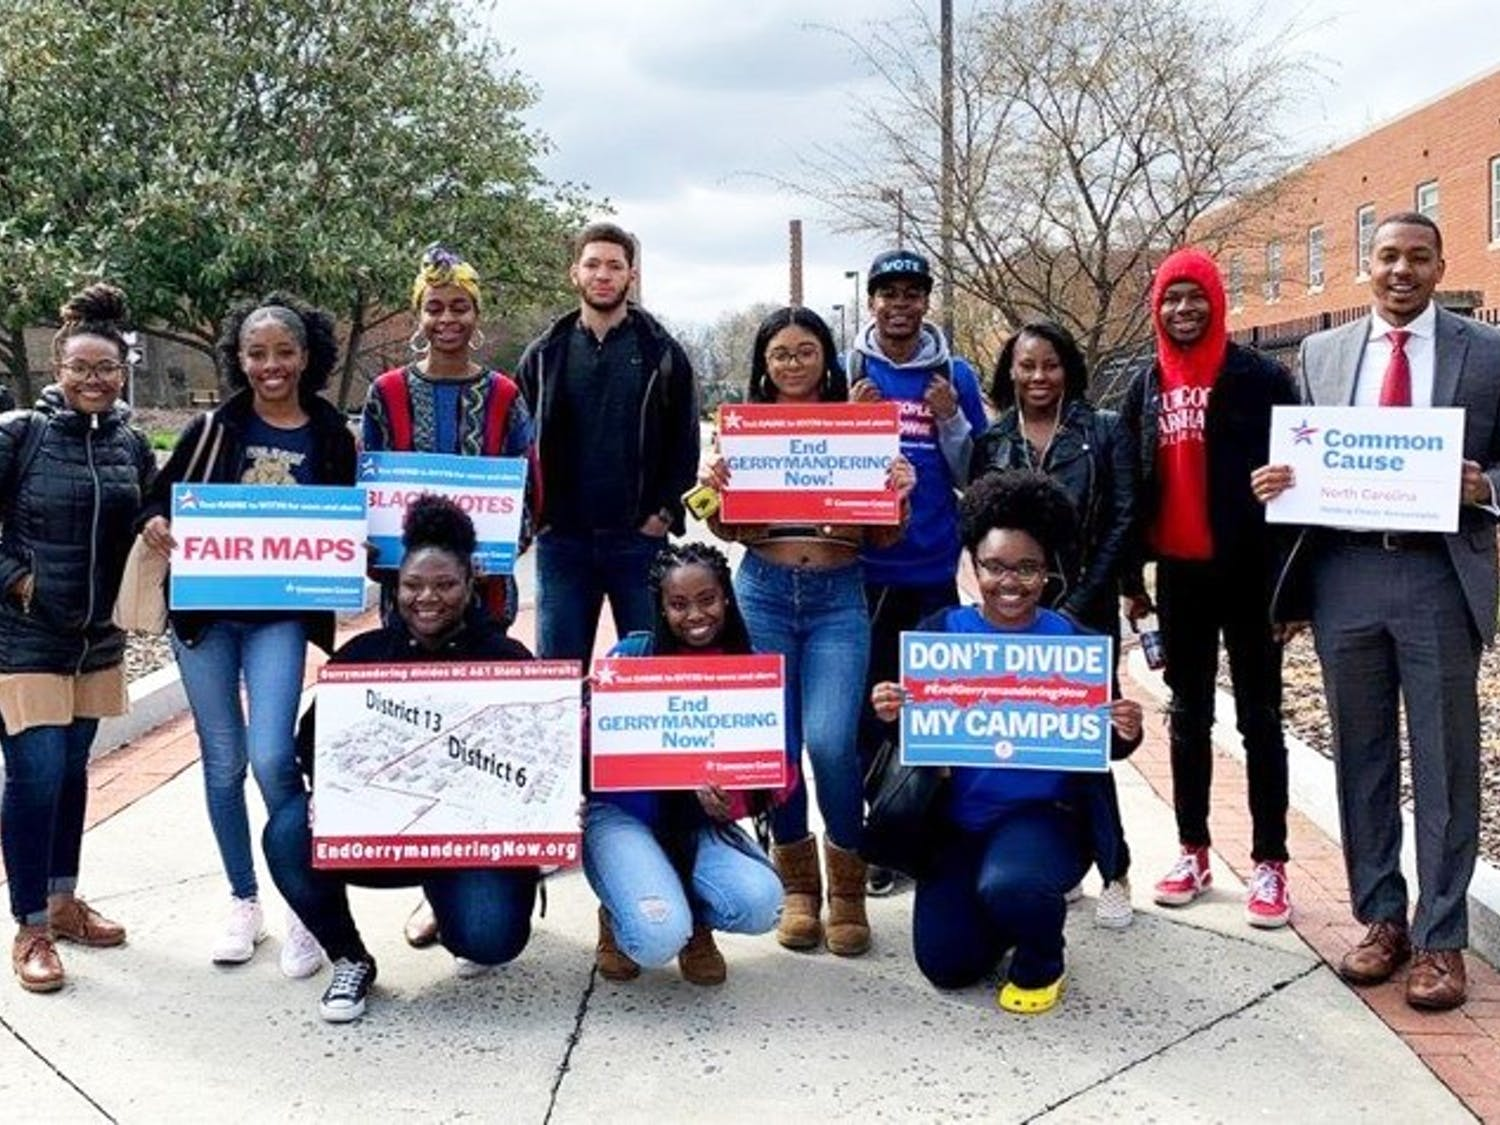 Students at NC A&T State University on Mar. 26, 2019, the same day the U.S. Supreme Court heard oral arguments in Common Cause v. Rucho, challenging partisan gerrymandering of North Carolina's congressional districts. The challenged map divided the campus of NC A&T State University into two different congressional districts. Photo courtesy of Bryan Warner.